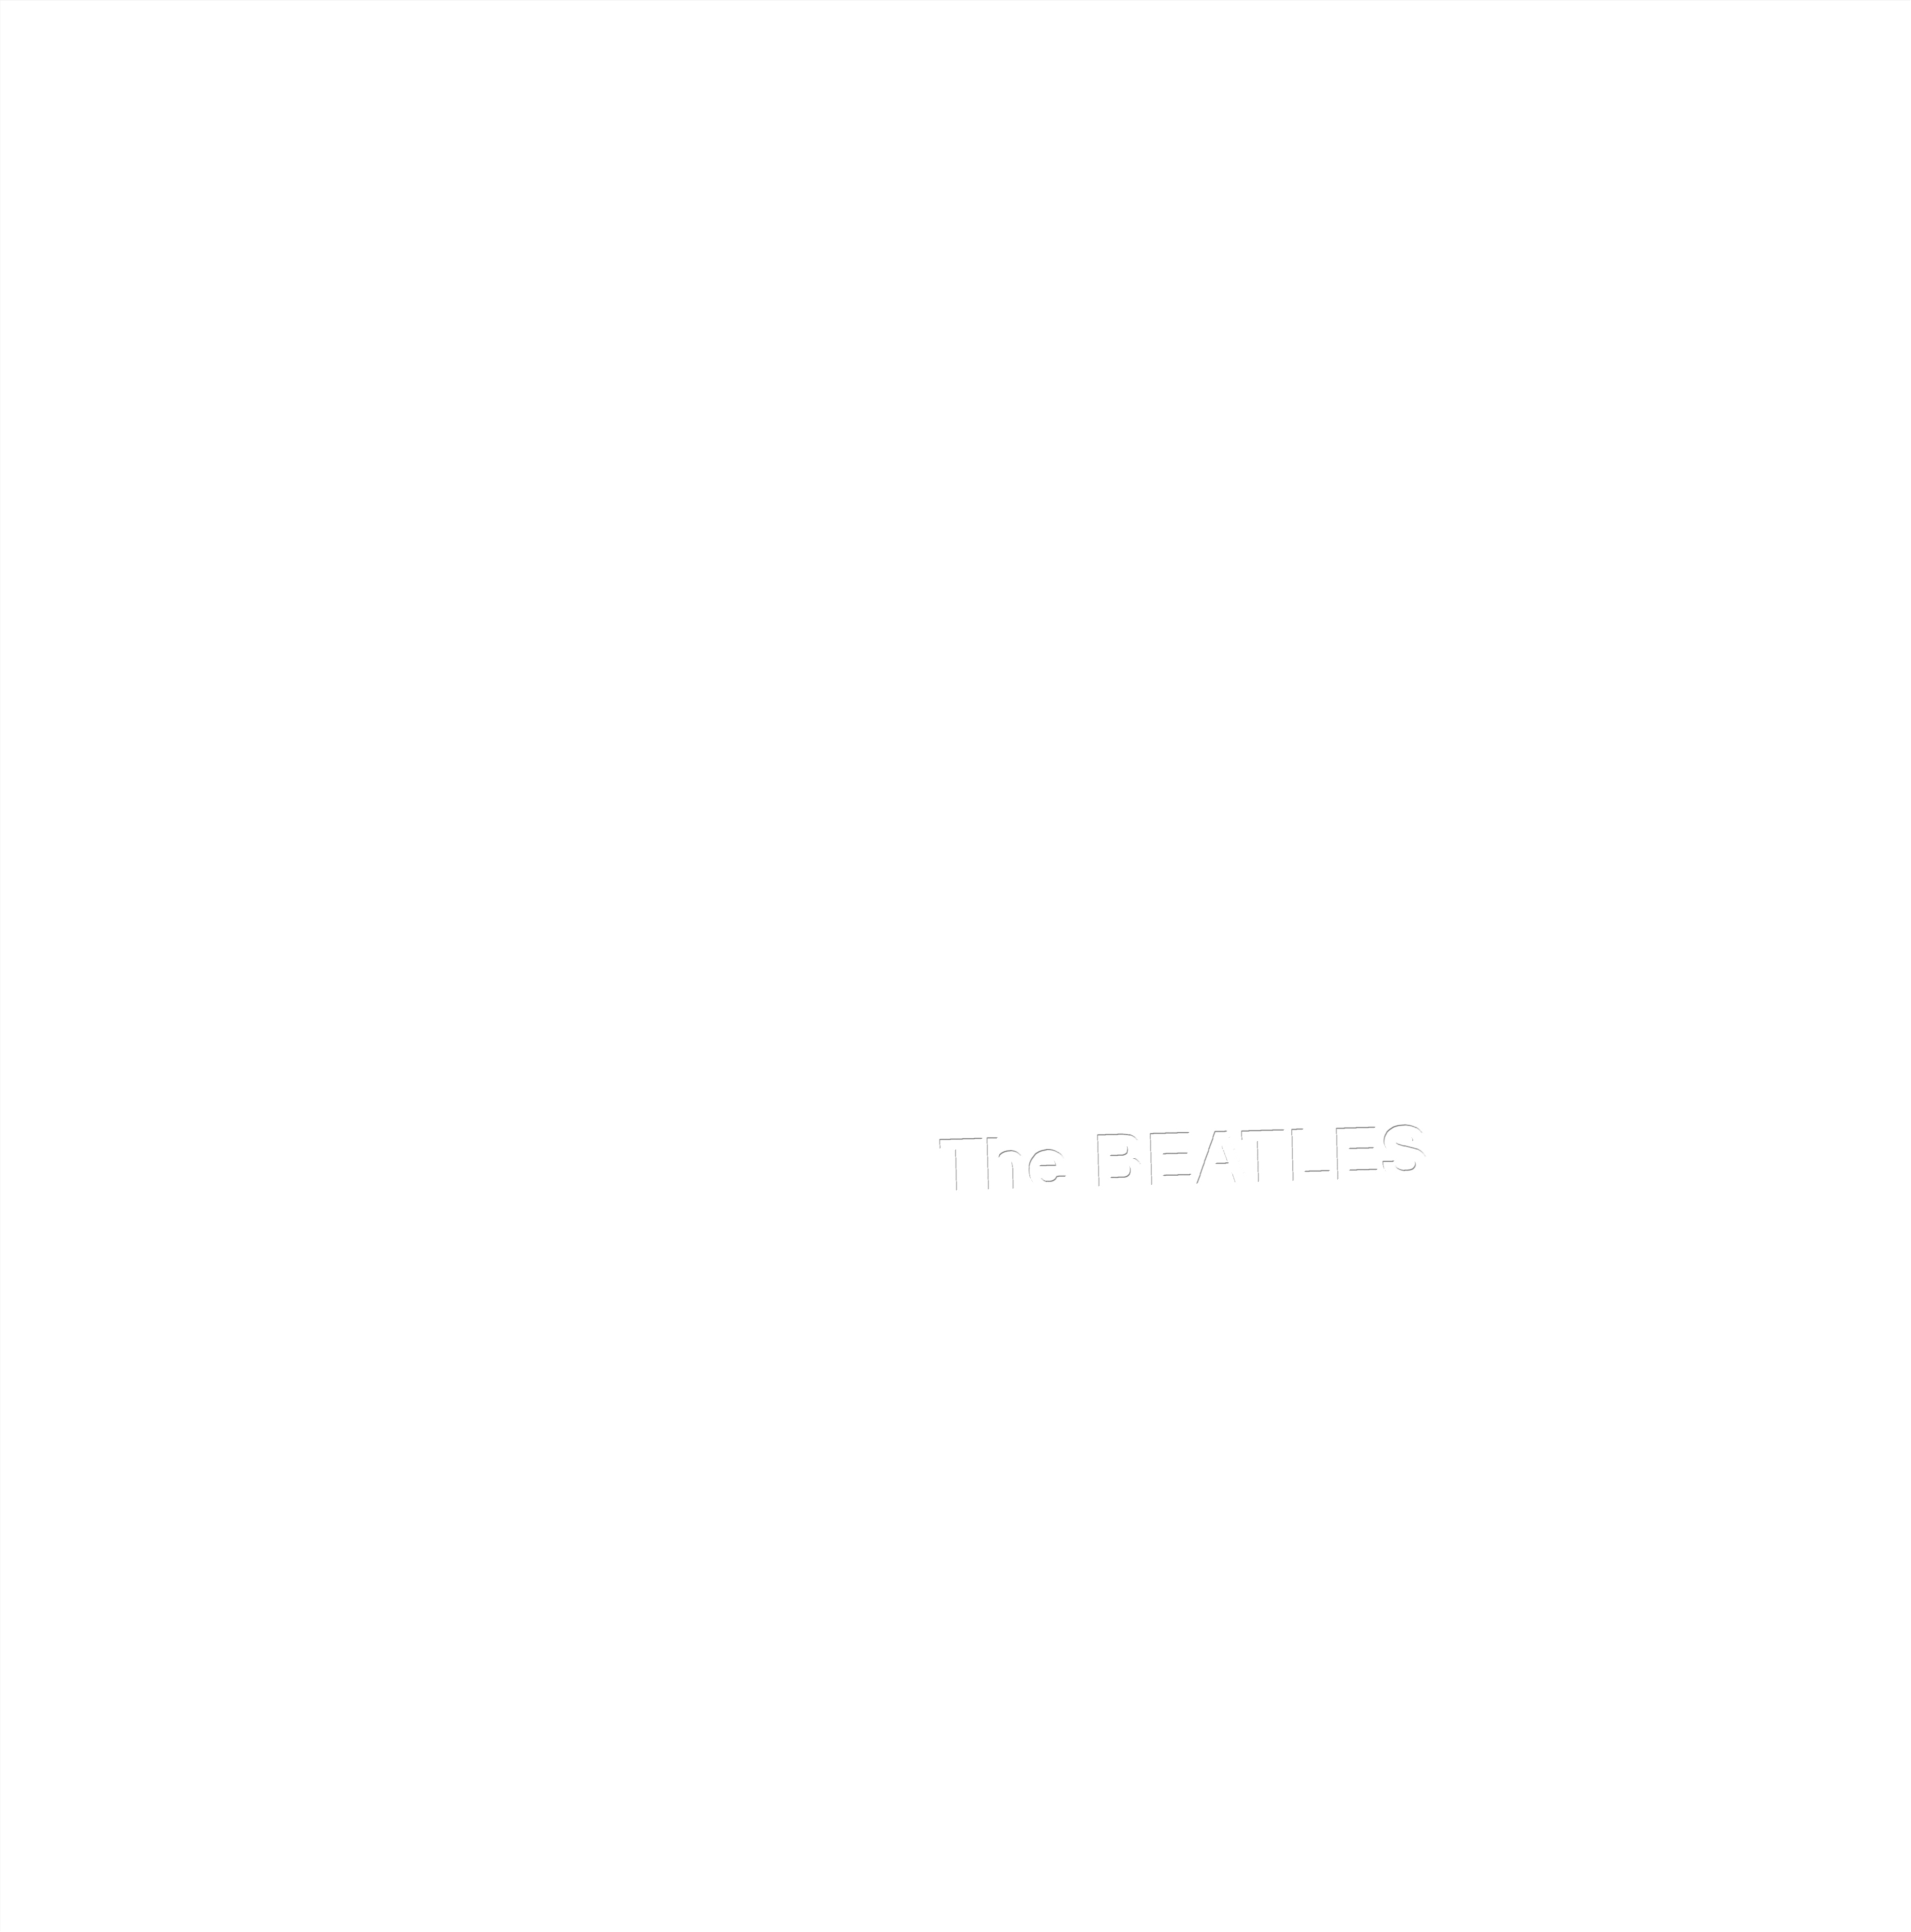 The Beatles (White album (Super deluxe edition))